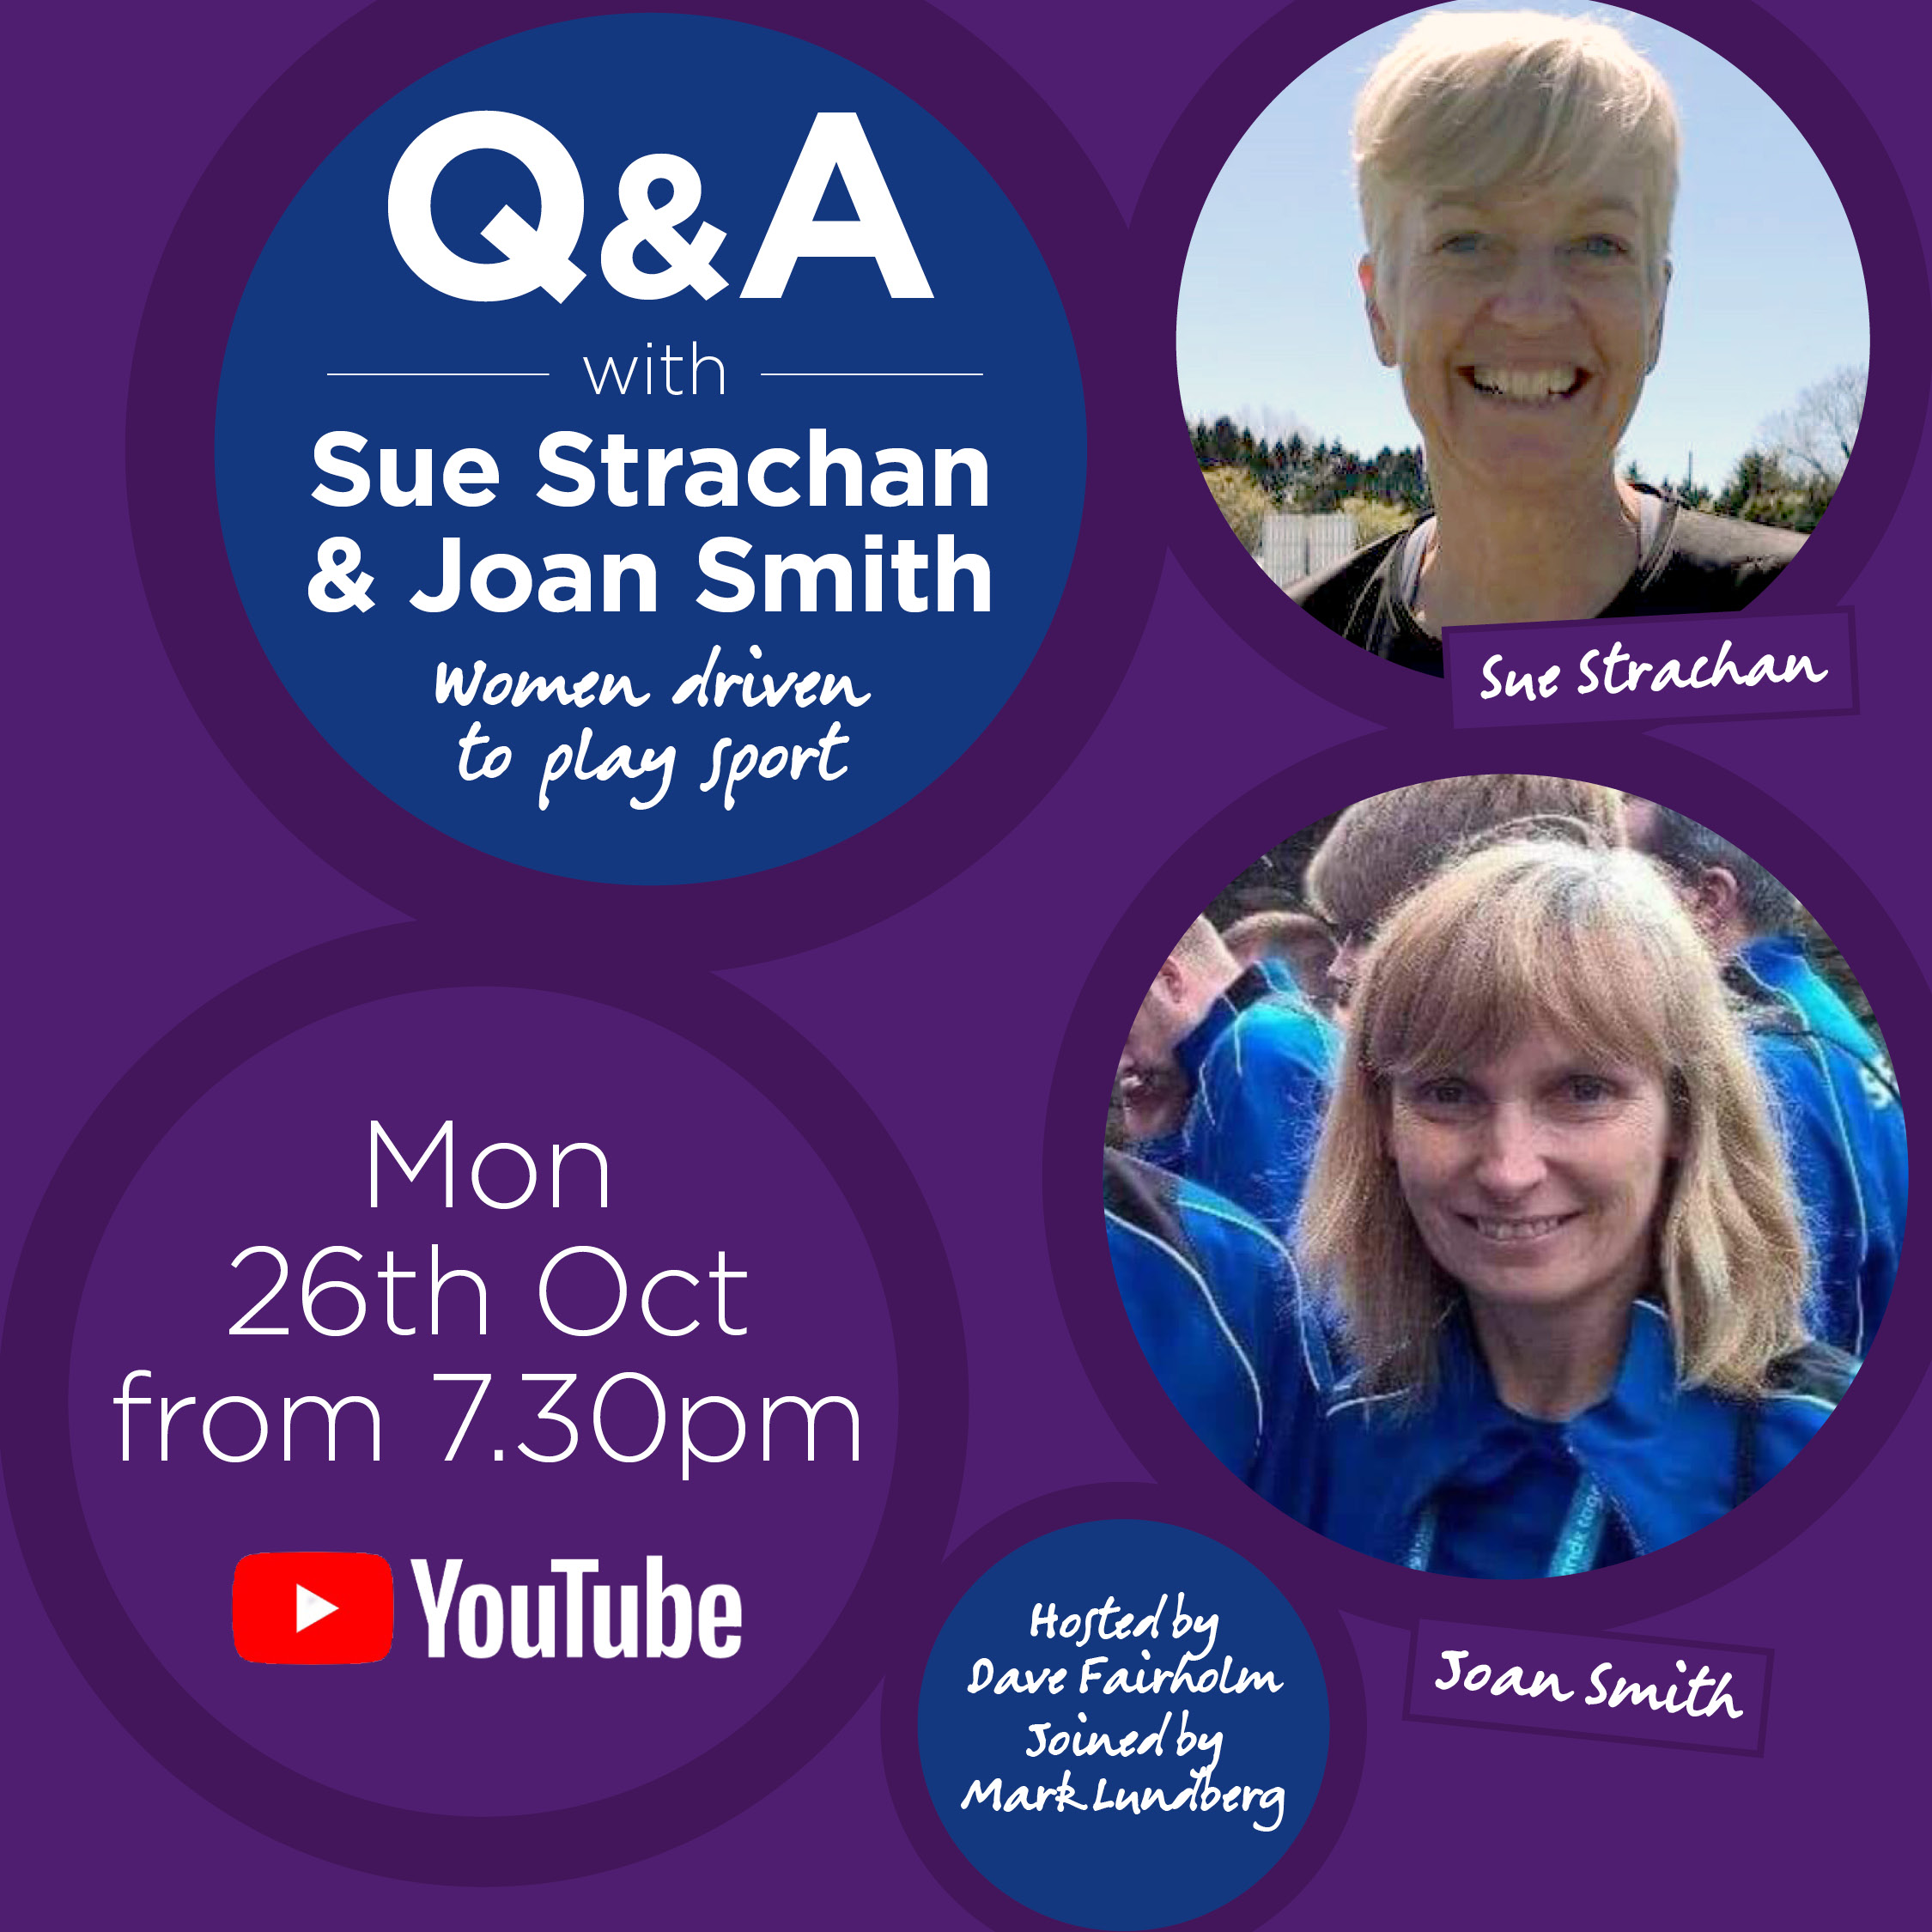 Q&A with Sue Strachan and Joan Smith